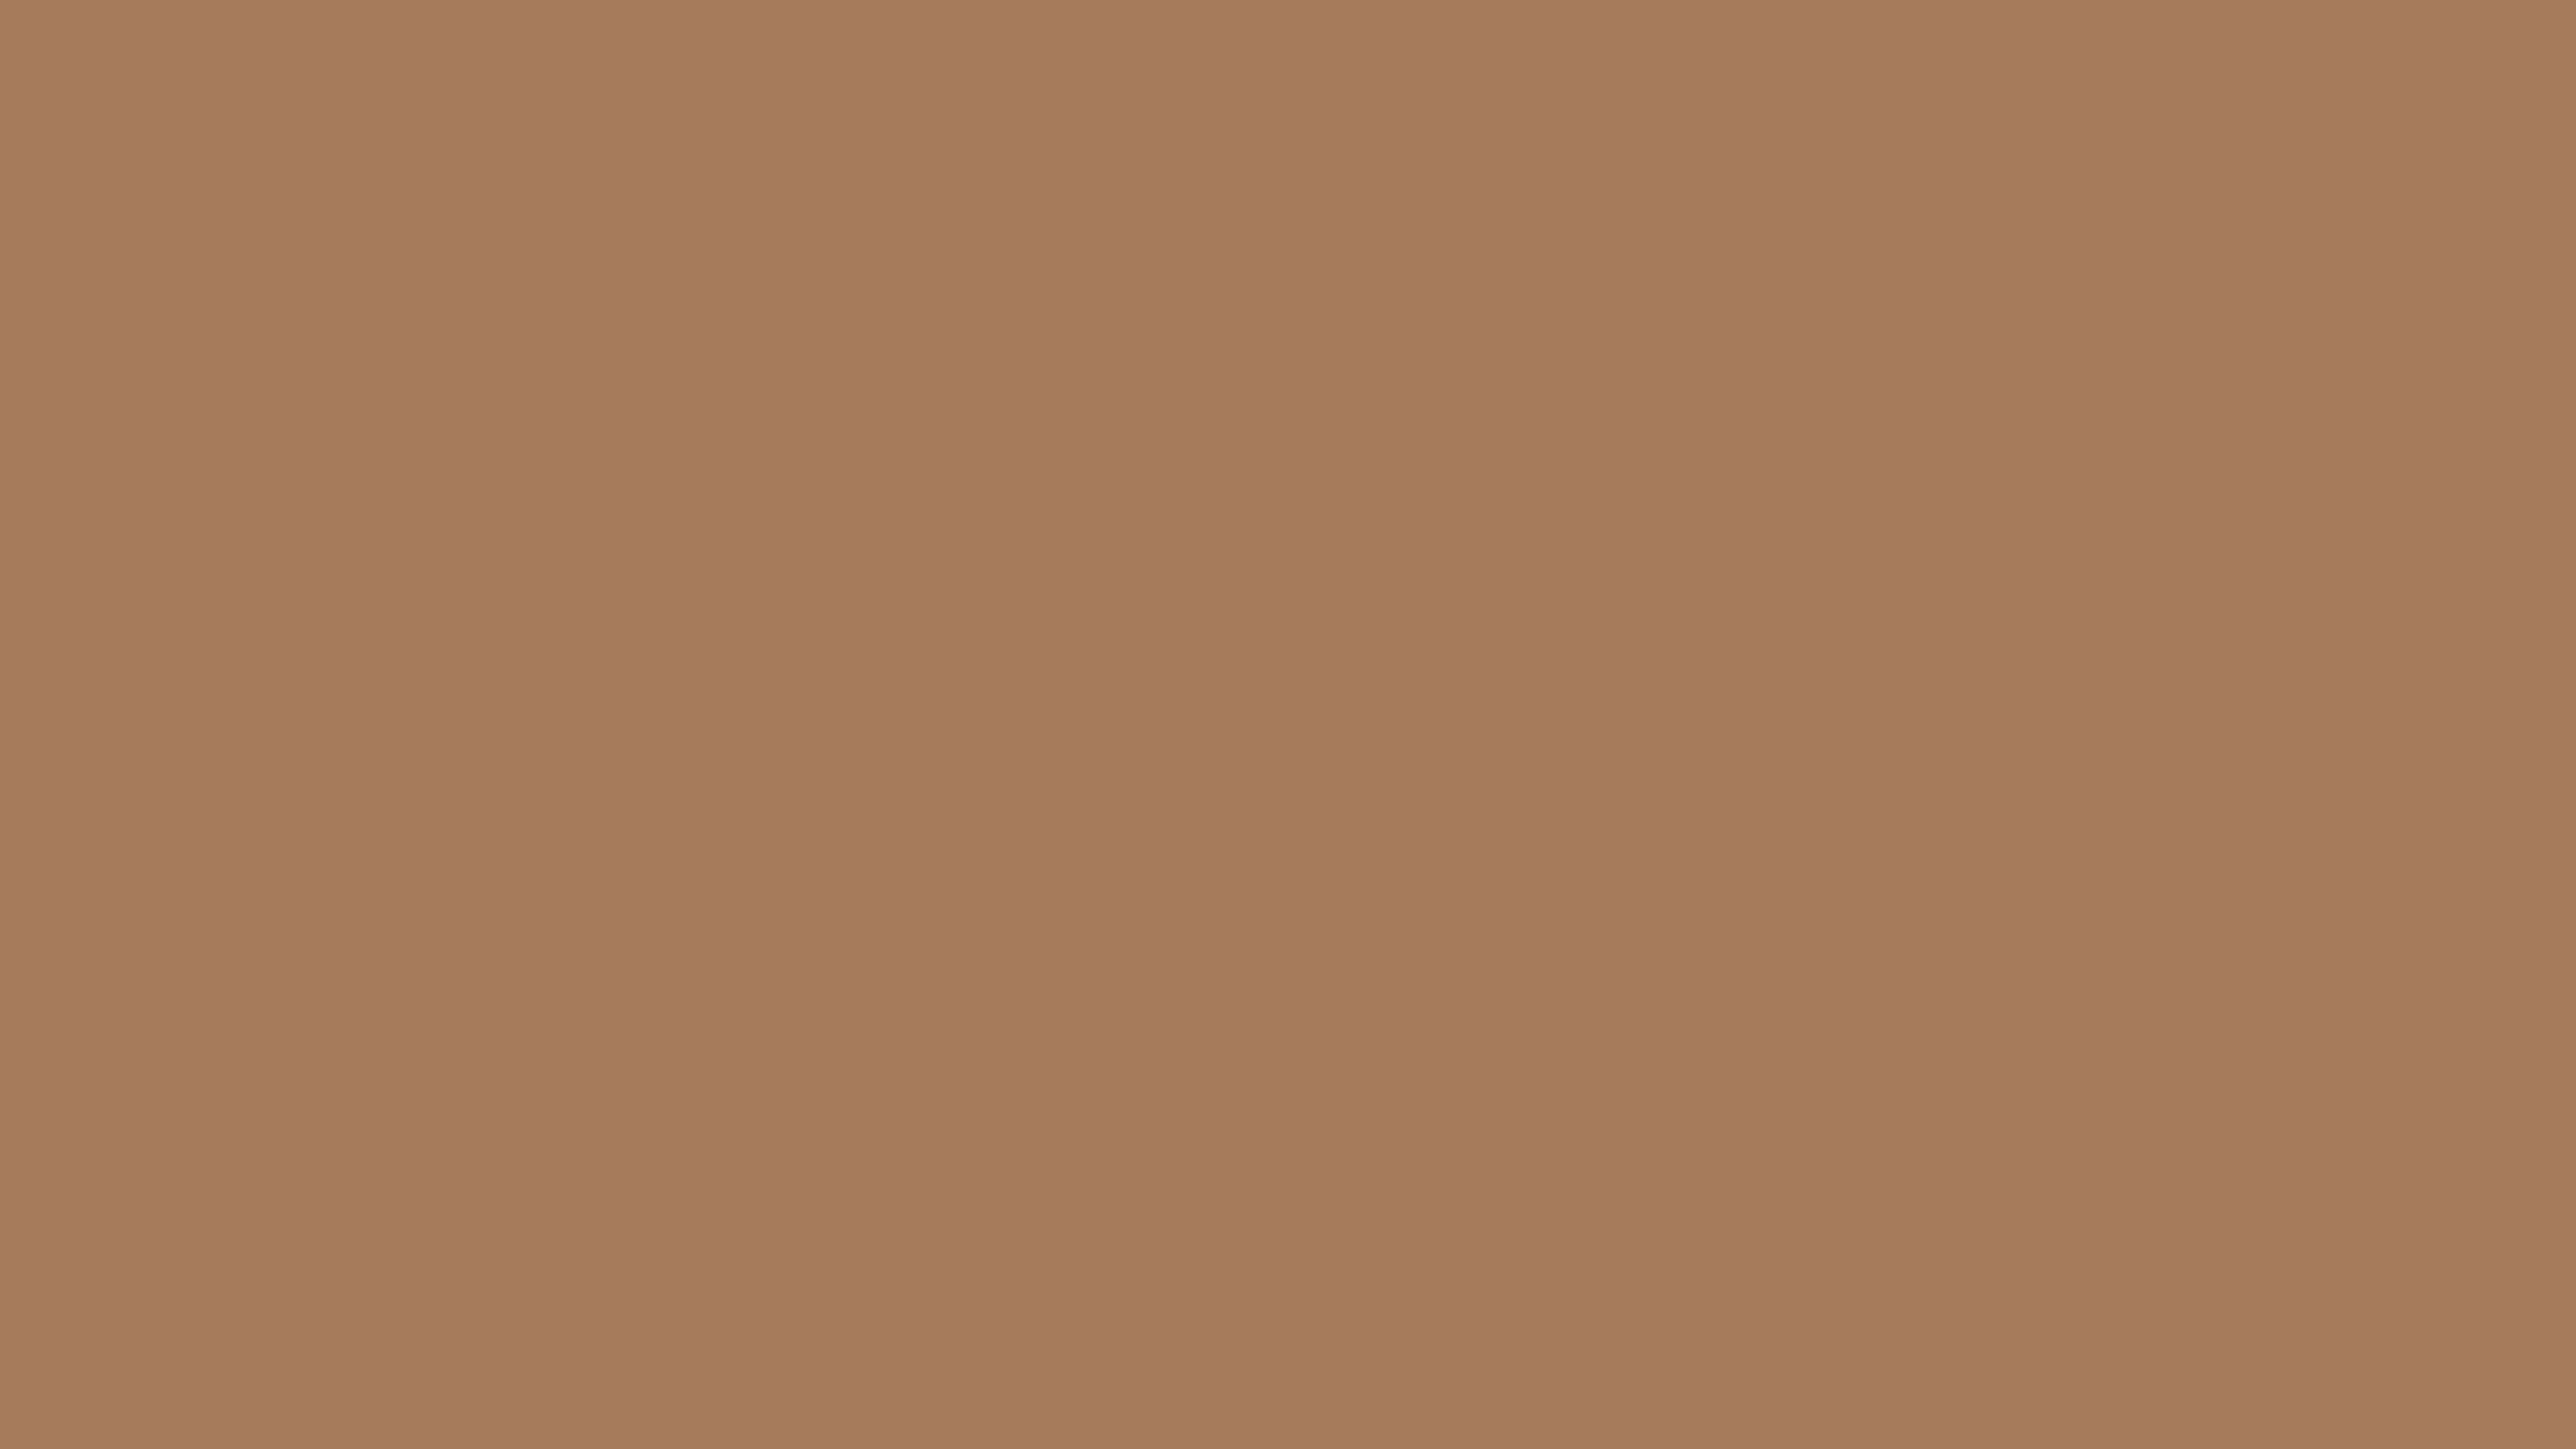 7680x4320 Tuscan Tan Solid Color Background